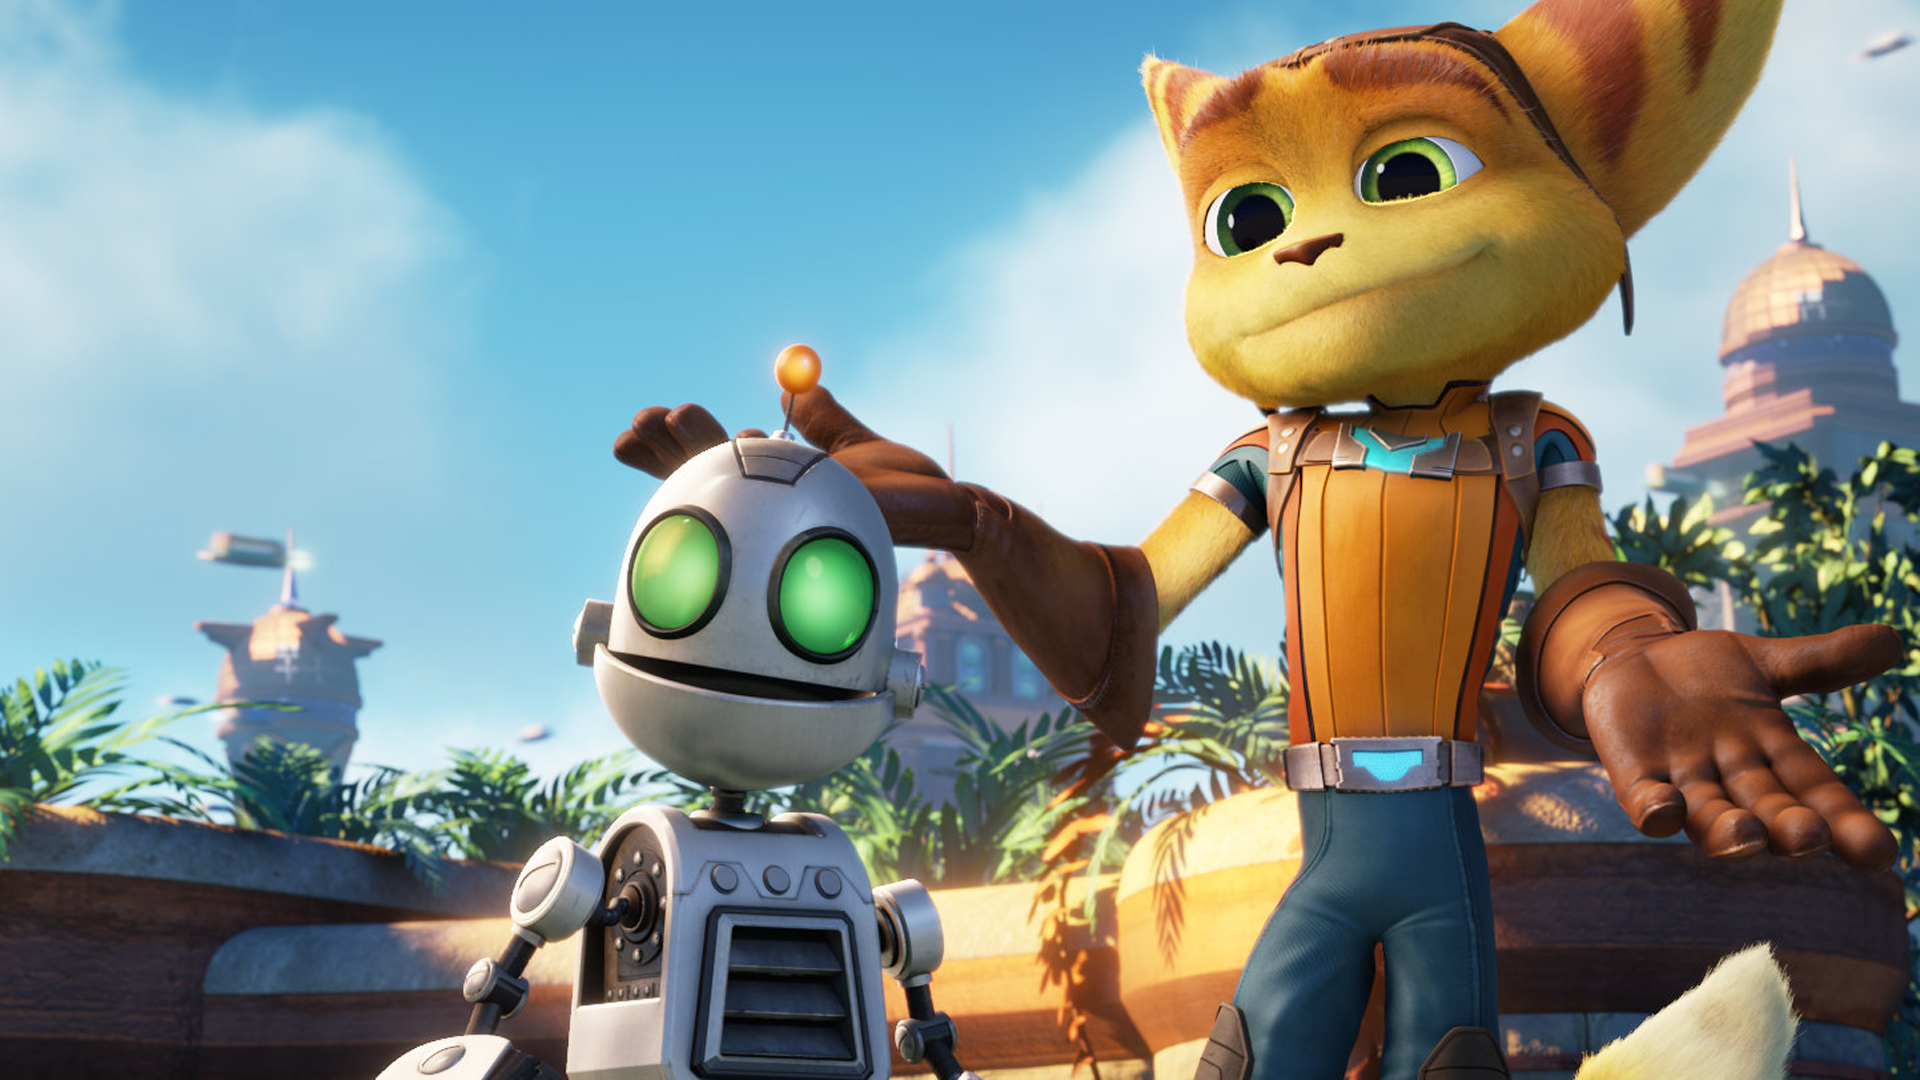 We have high hopes for the Ratchet and Clank movie which has the advantages of using two well-liked characters and the complete absence of Adam Sandler.